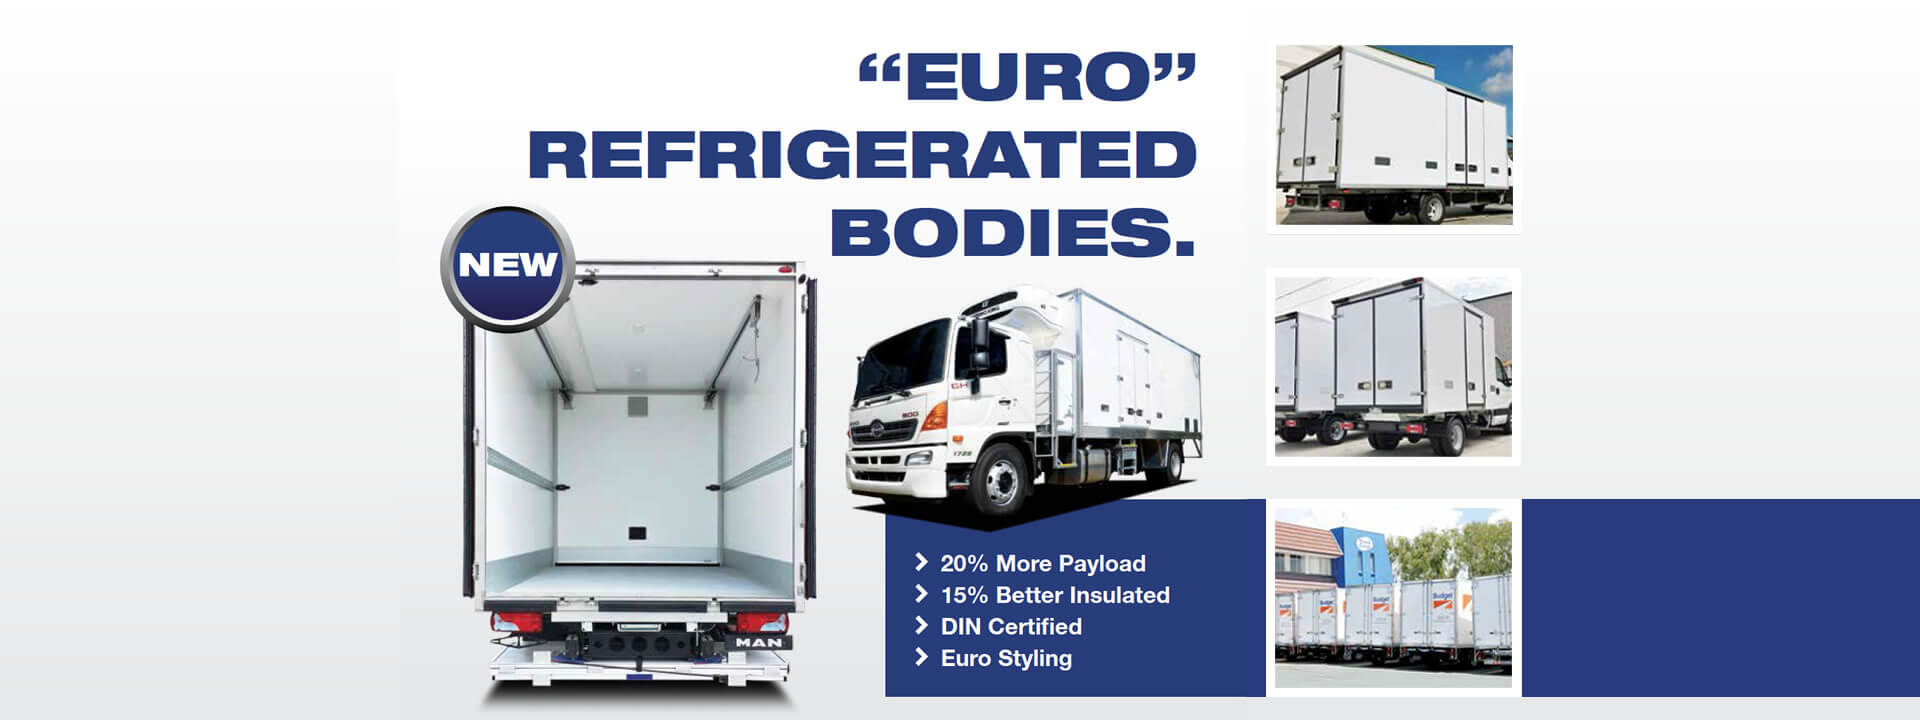 "Truck Corp's new ""Euro"" refrigerated bodies featuring European Design, K Factor and High Payload"